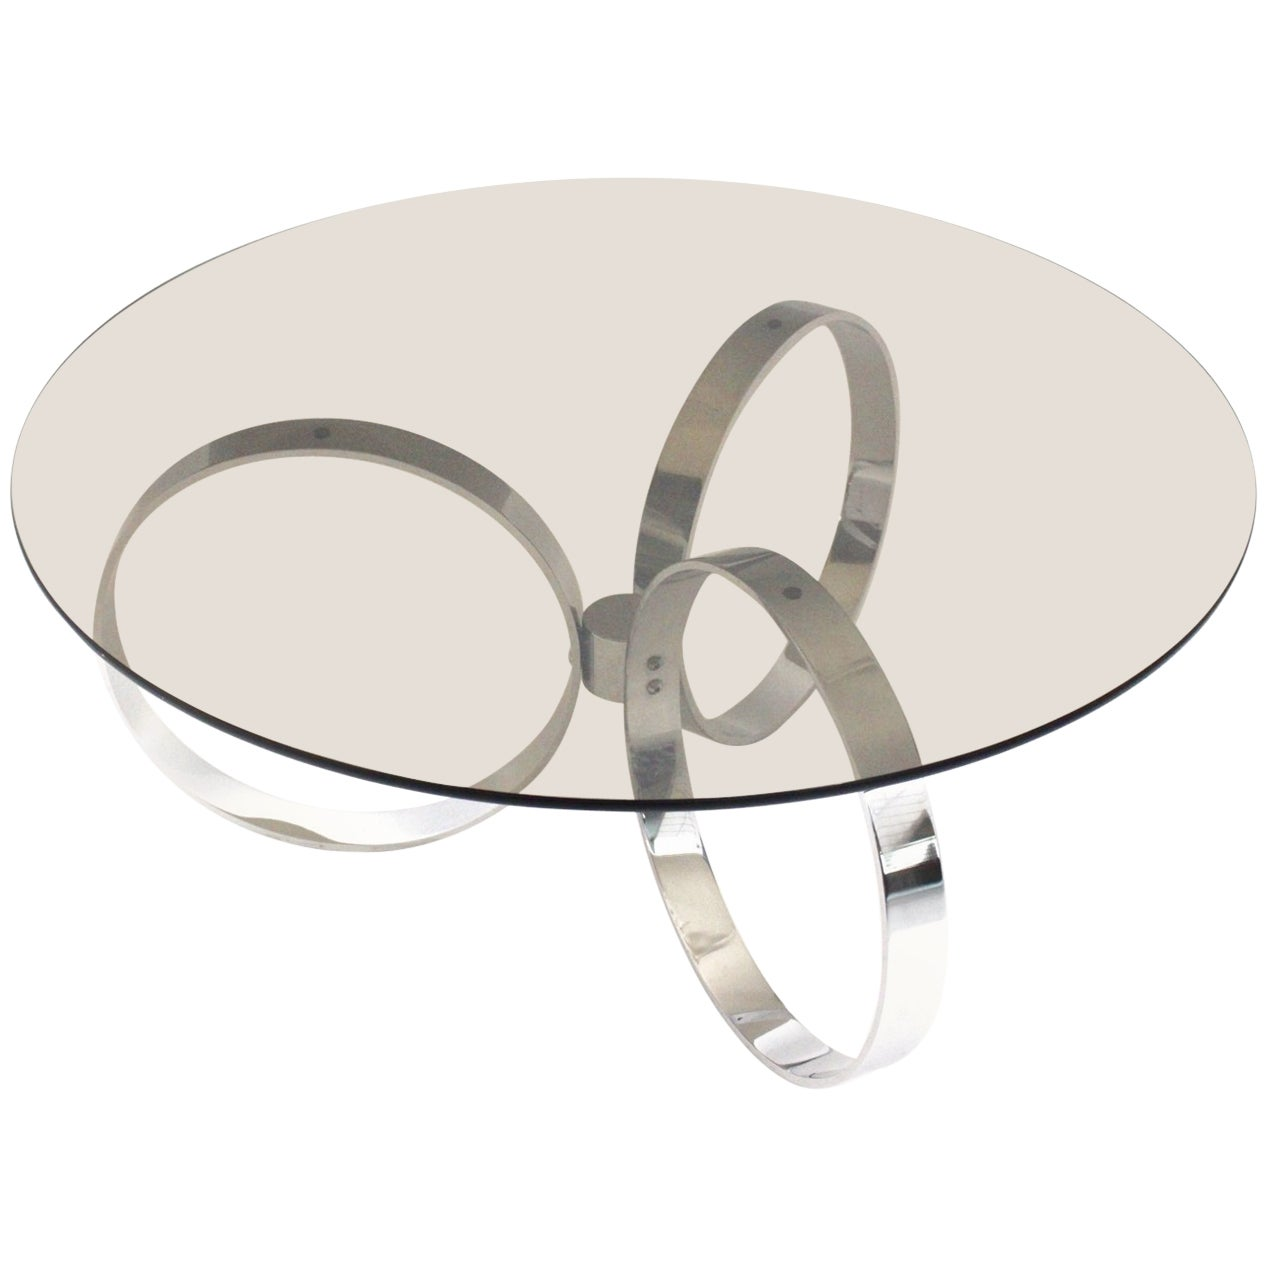 Modernist Chromed Vintage Coffee Table with Three Rings, 1970s